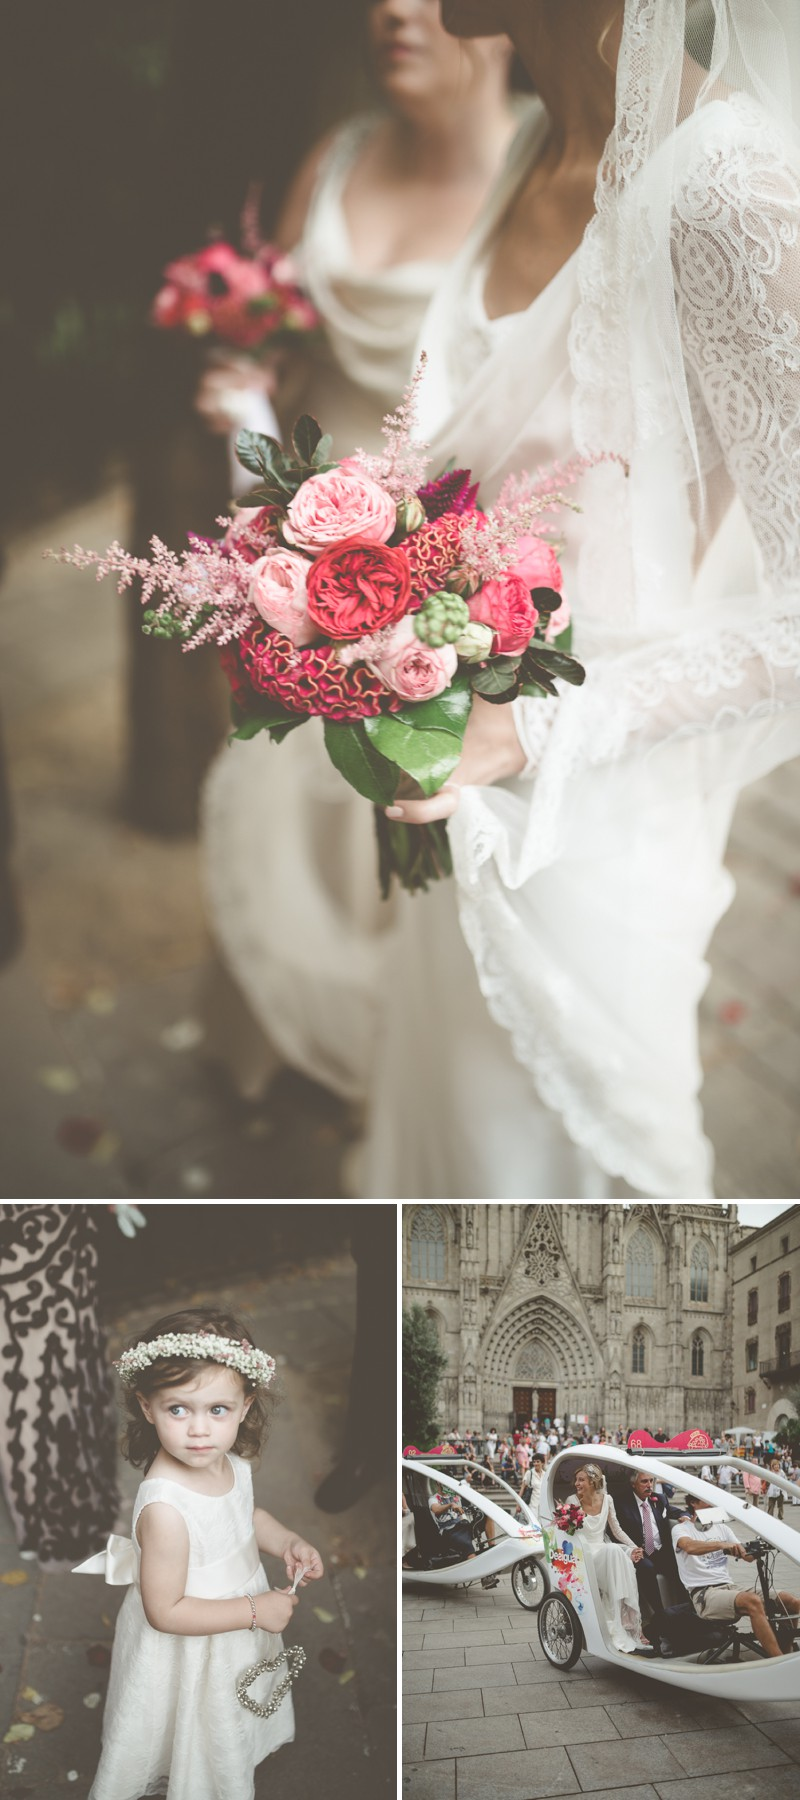 An Intimate And Luxurious Destination Wedding In Barcelona With A Suzanne Neville 'Regency' Dress And A Jenny Packham 'Valentine' Headpiece By Modern Vintage Weddings Photography._0004